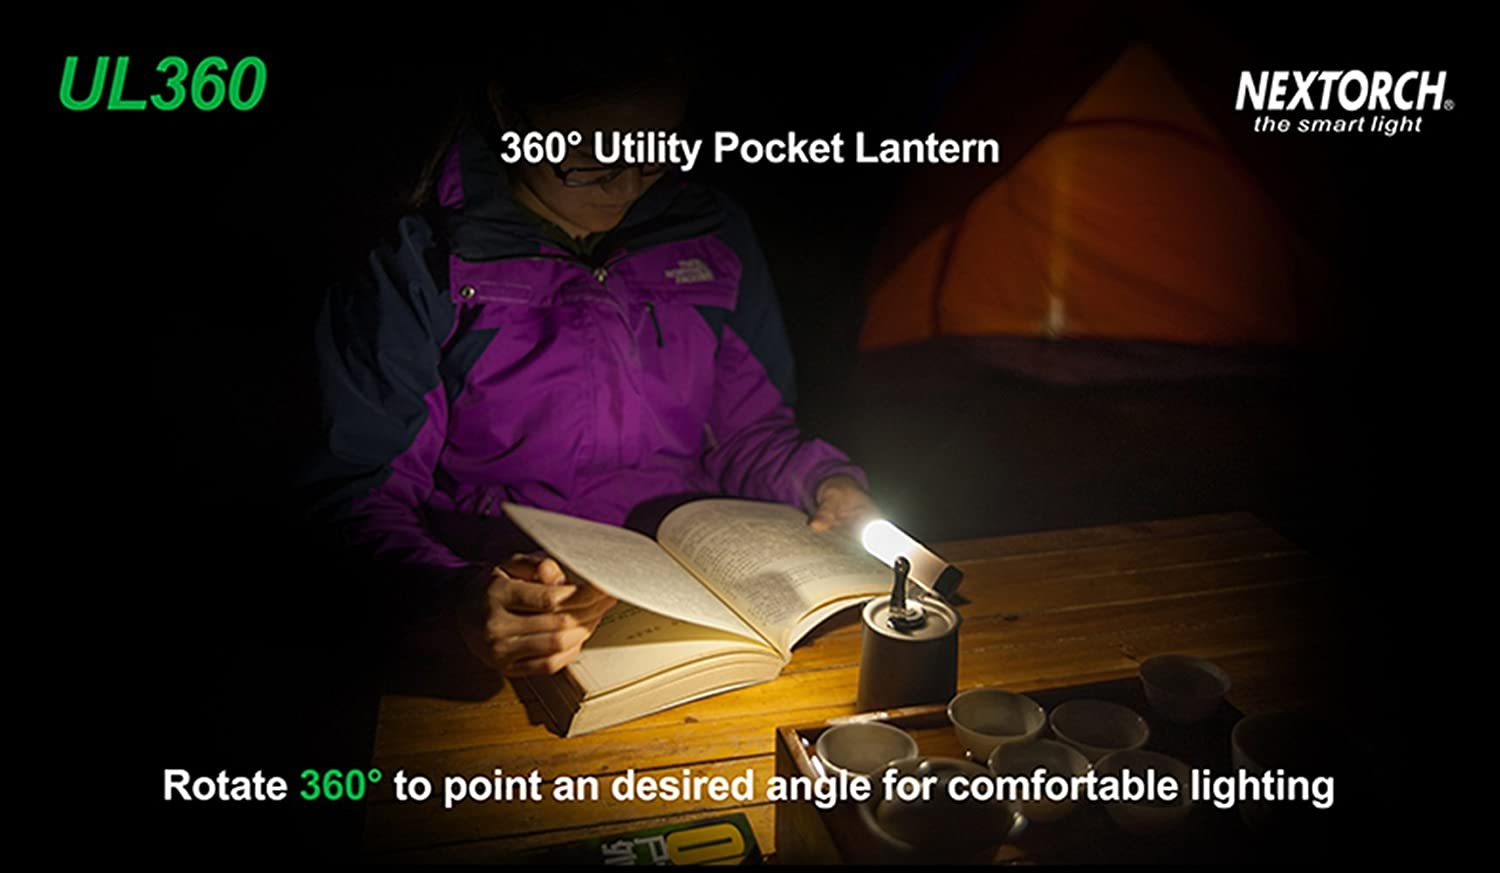 High Lumens Water Resistant NEXTORCH UL360 Portable Camping Lantern Emergency Preparedness and Tactical Gear Tactical Outdoor and Camping Gear